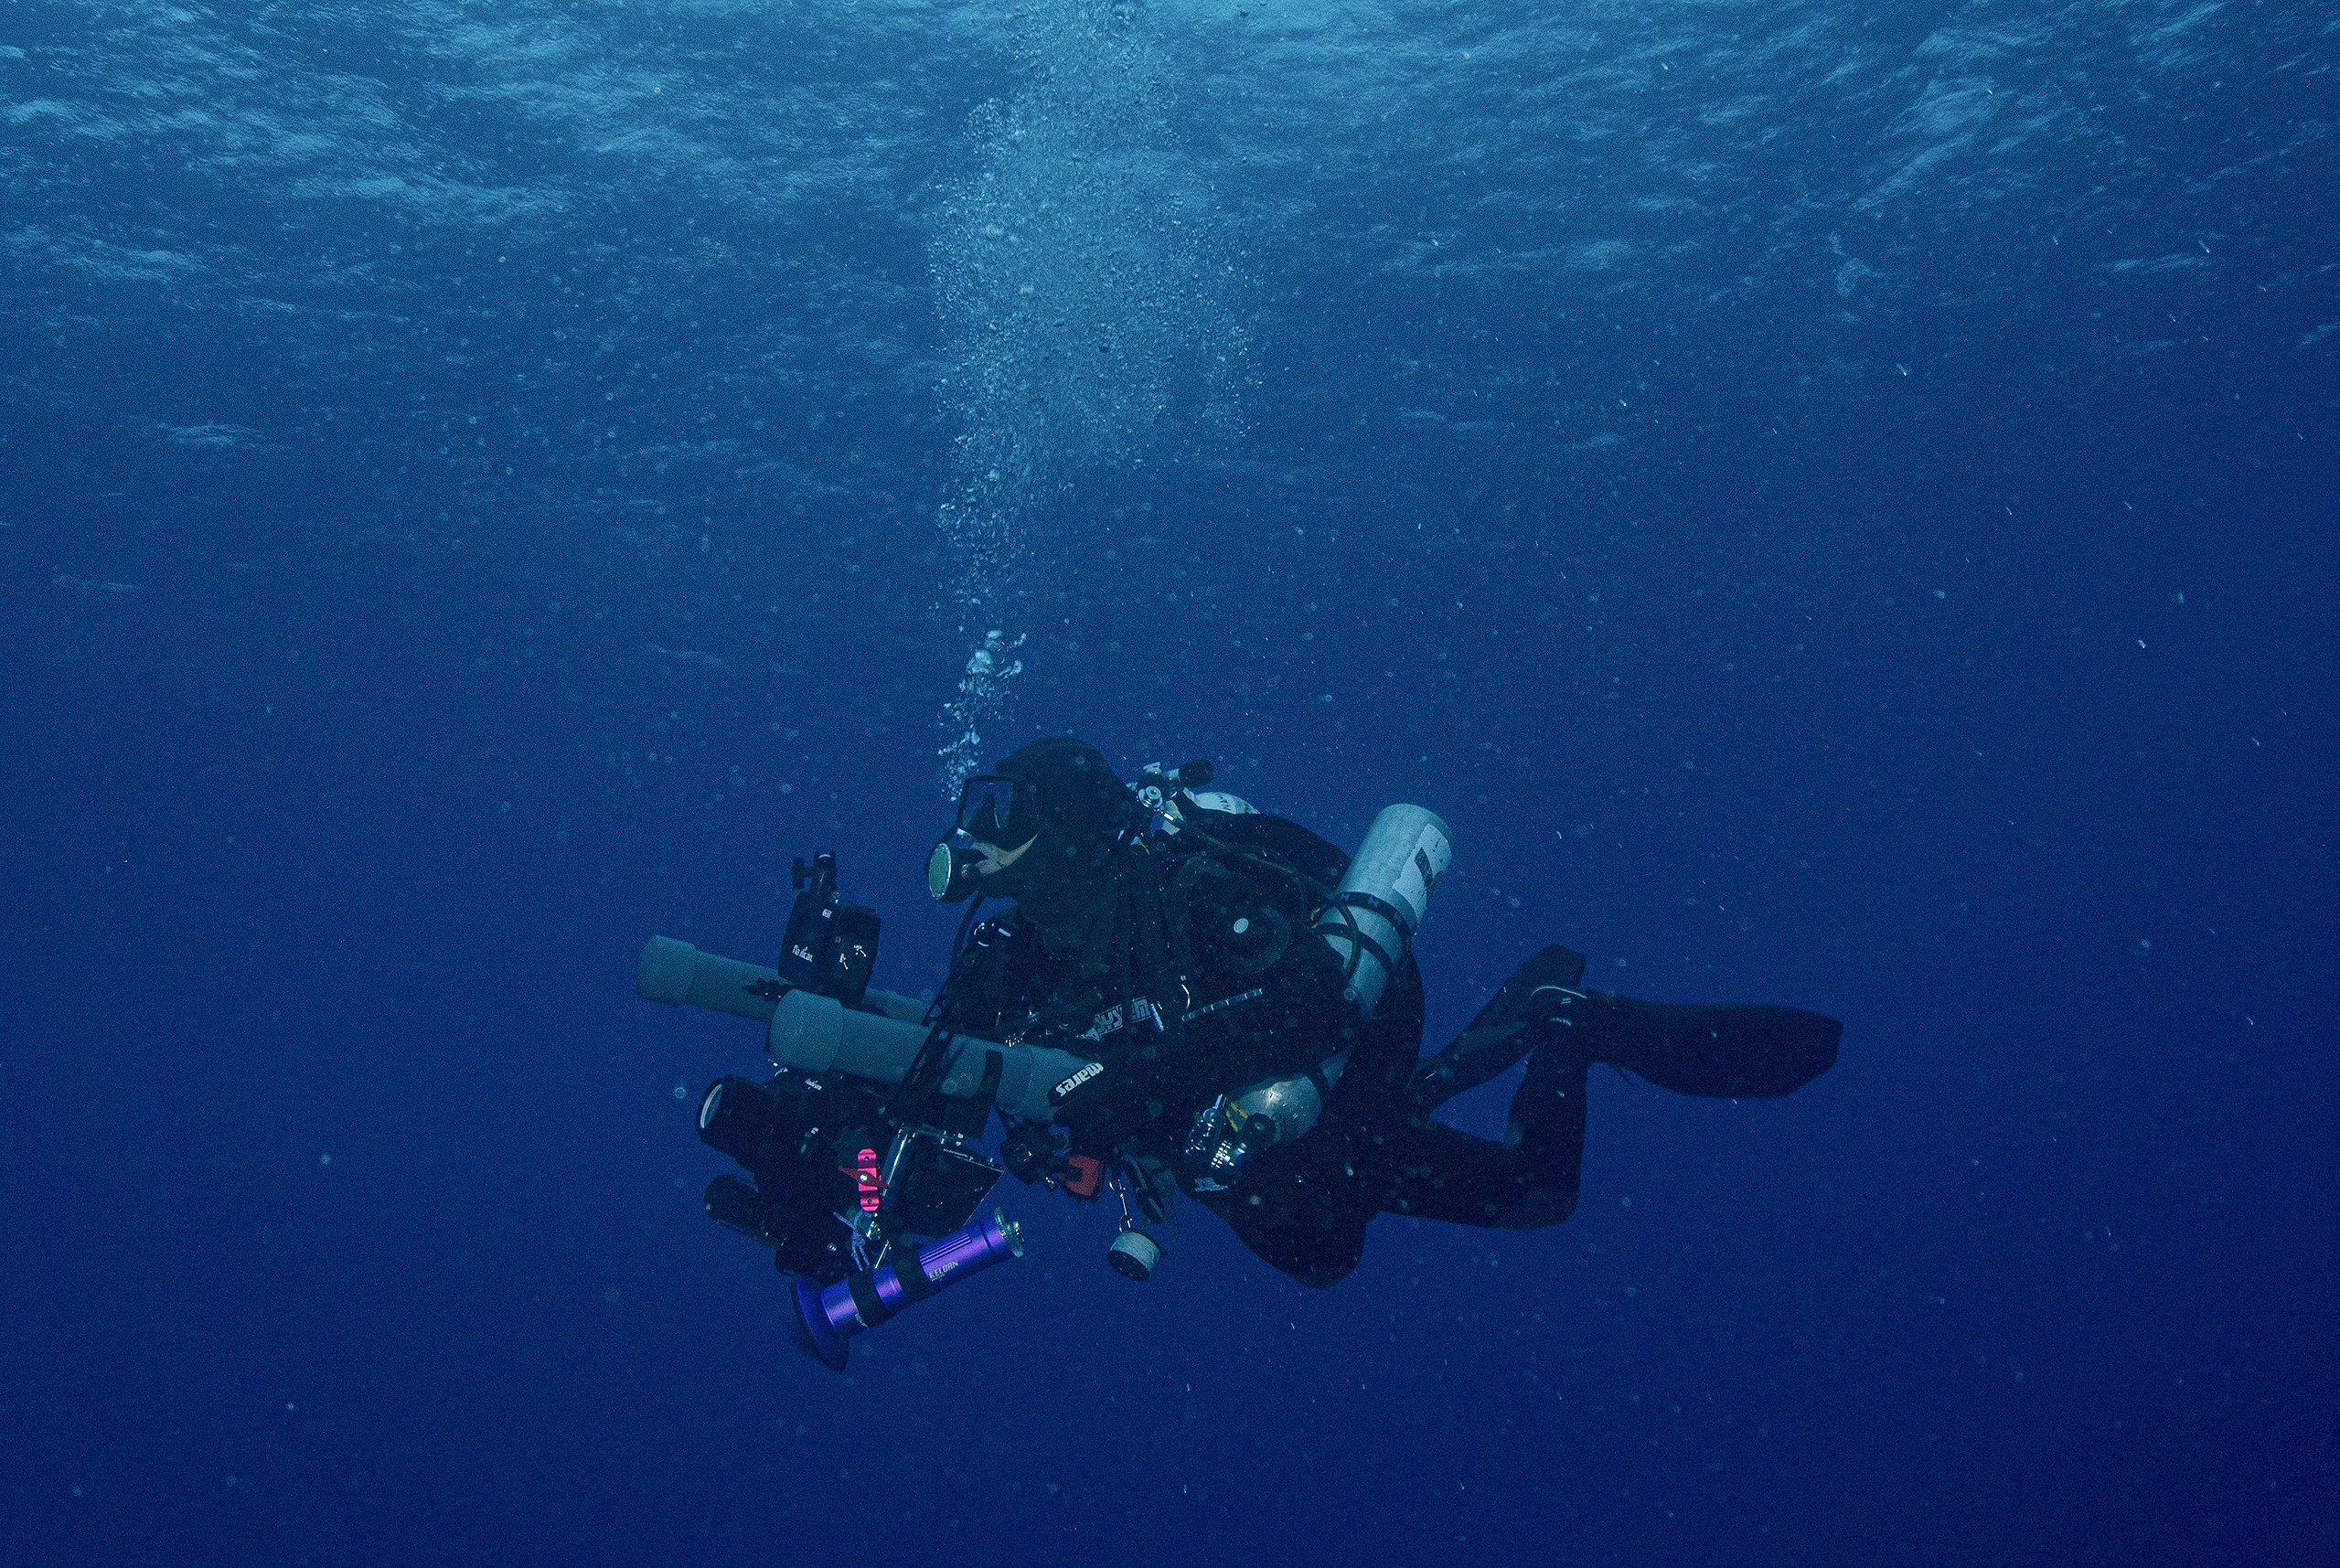 flavio_oliva_documentarist_director_underwater_cinematography_01